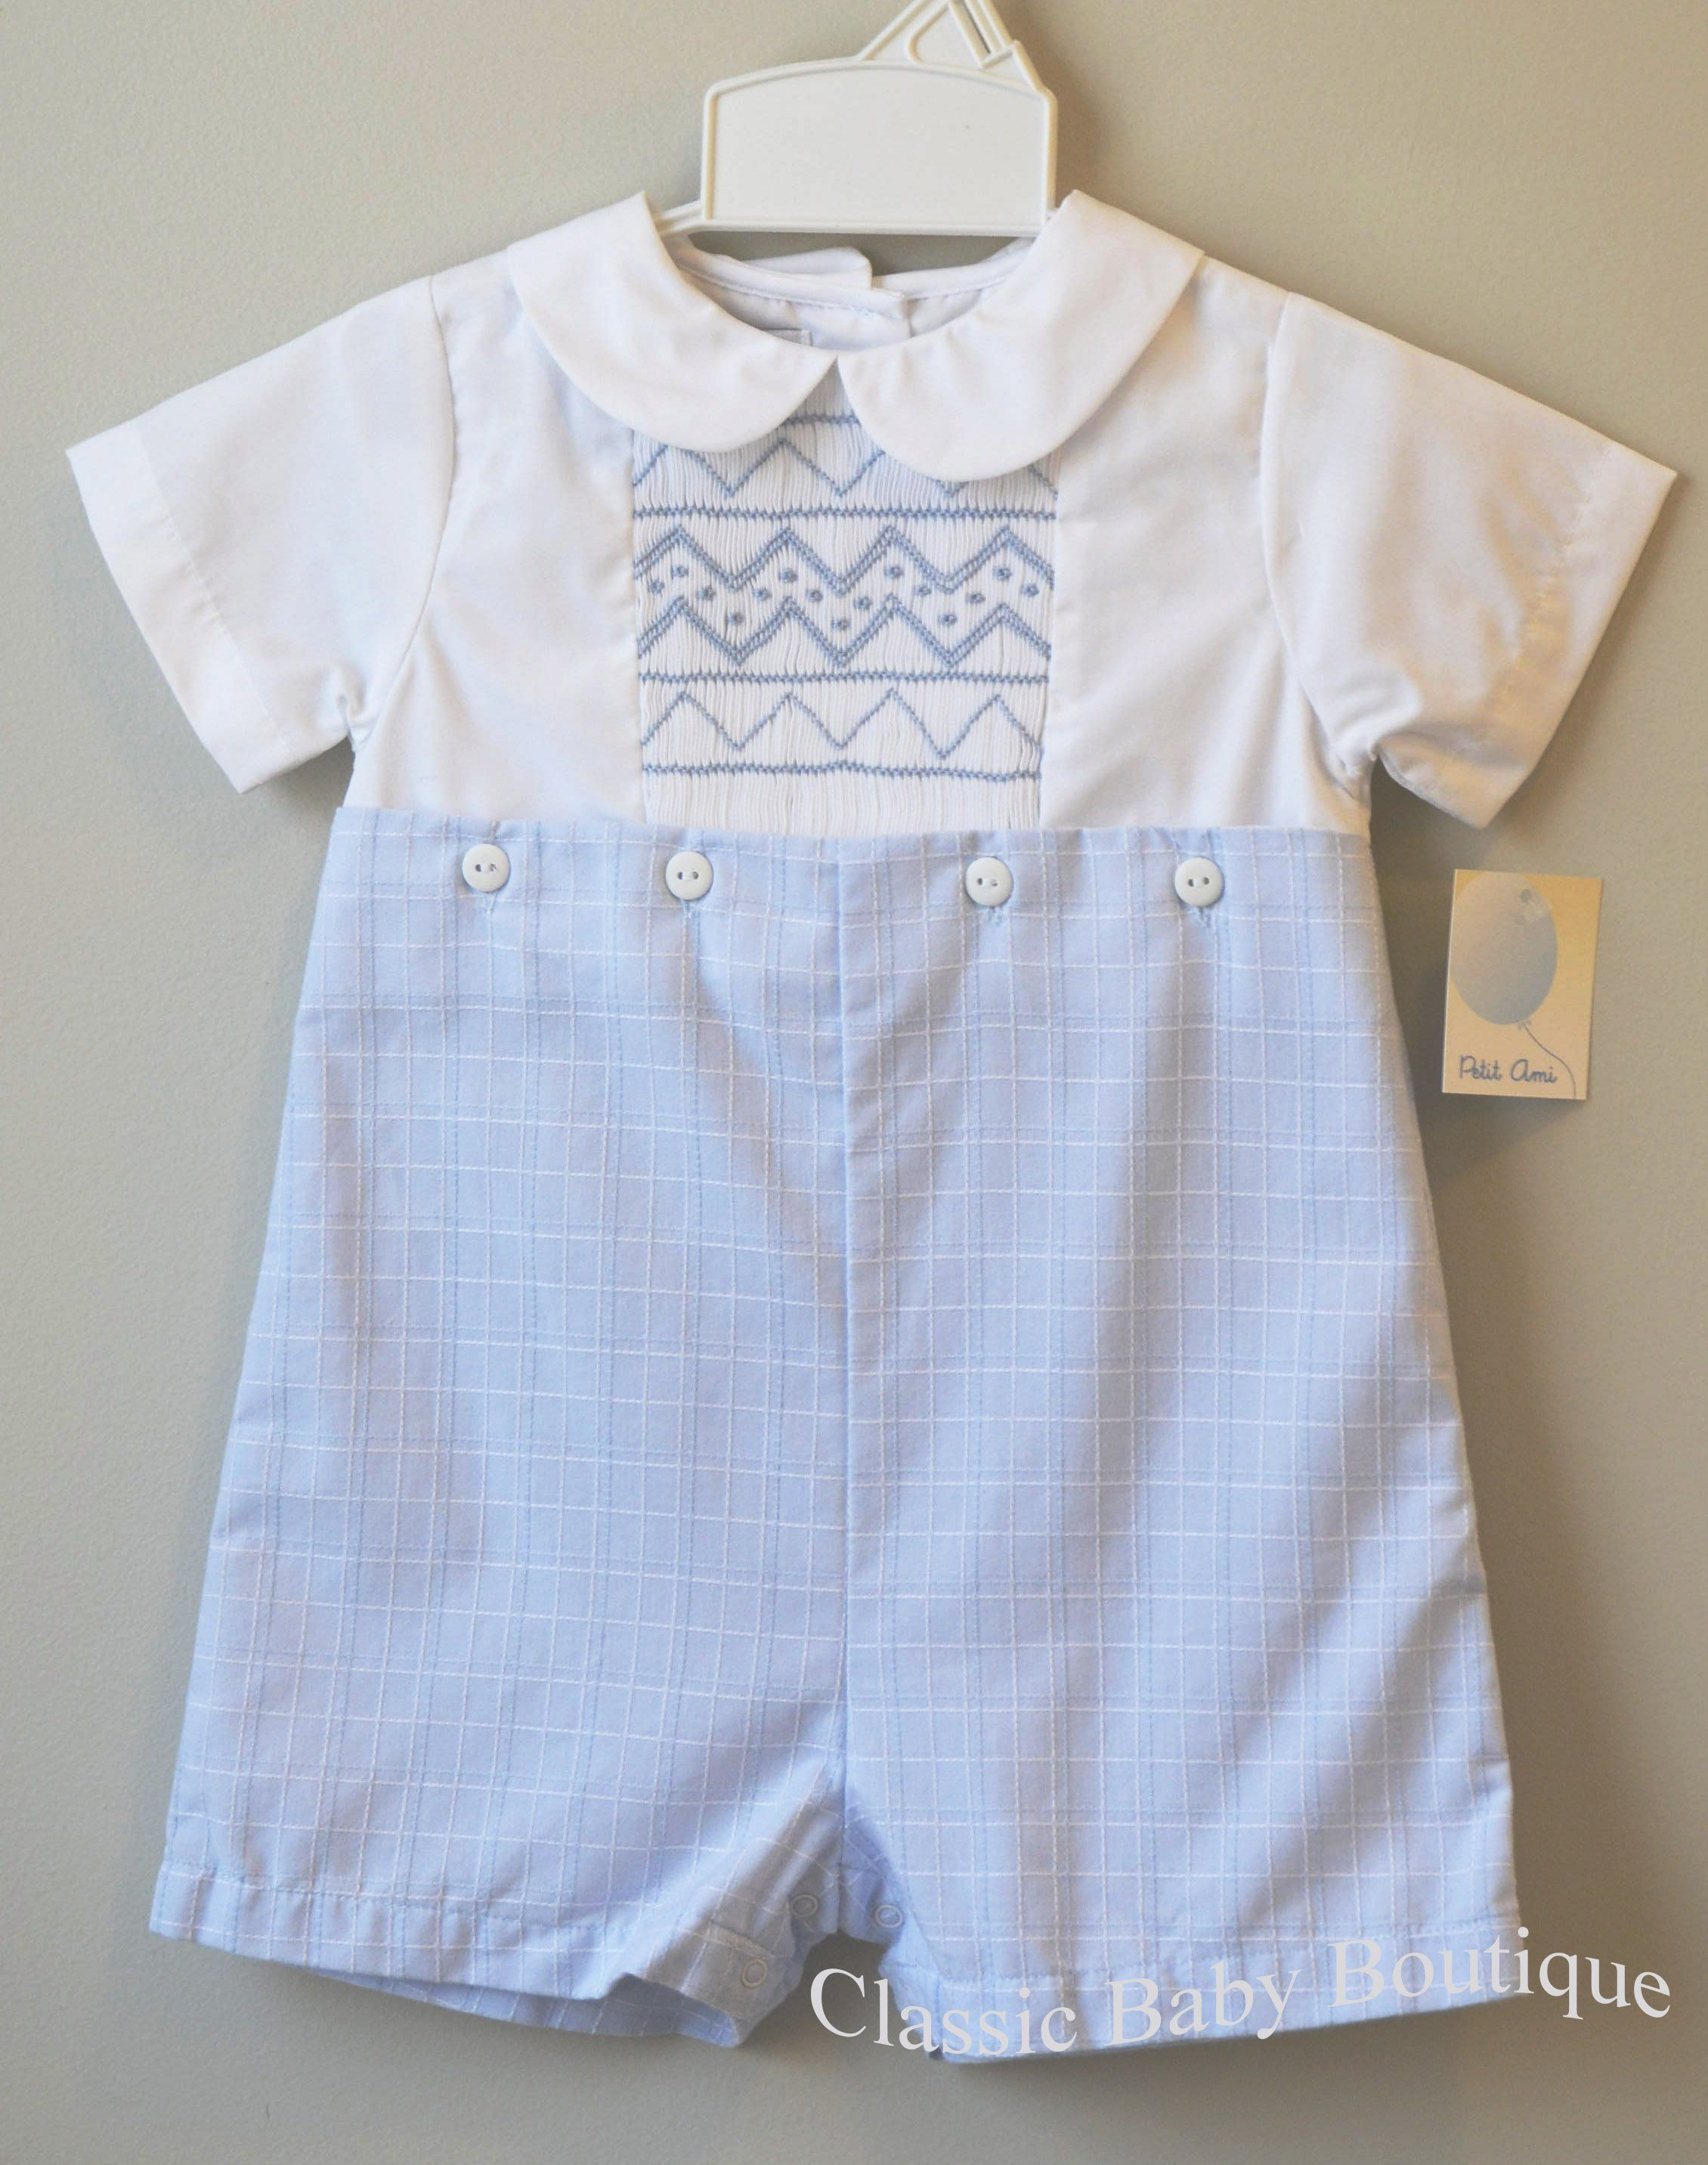 60a8fa0e2 Petit Ami Boys White & Blue Smocked Bobby Suit Romper 3 6 9 12 18 24 Months